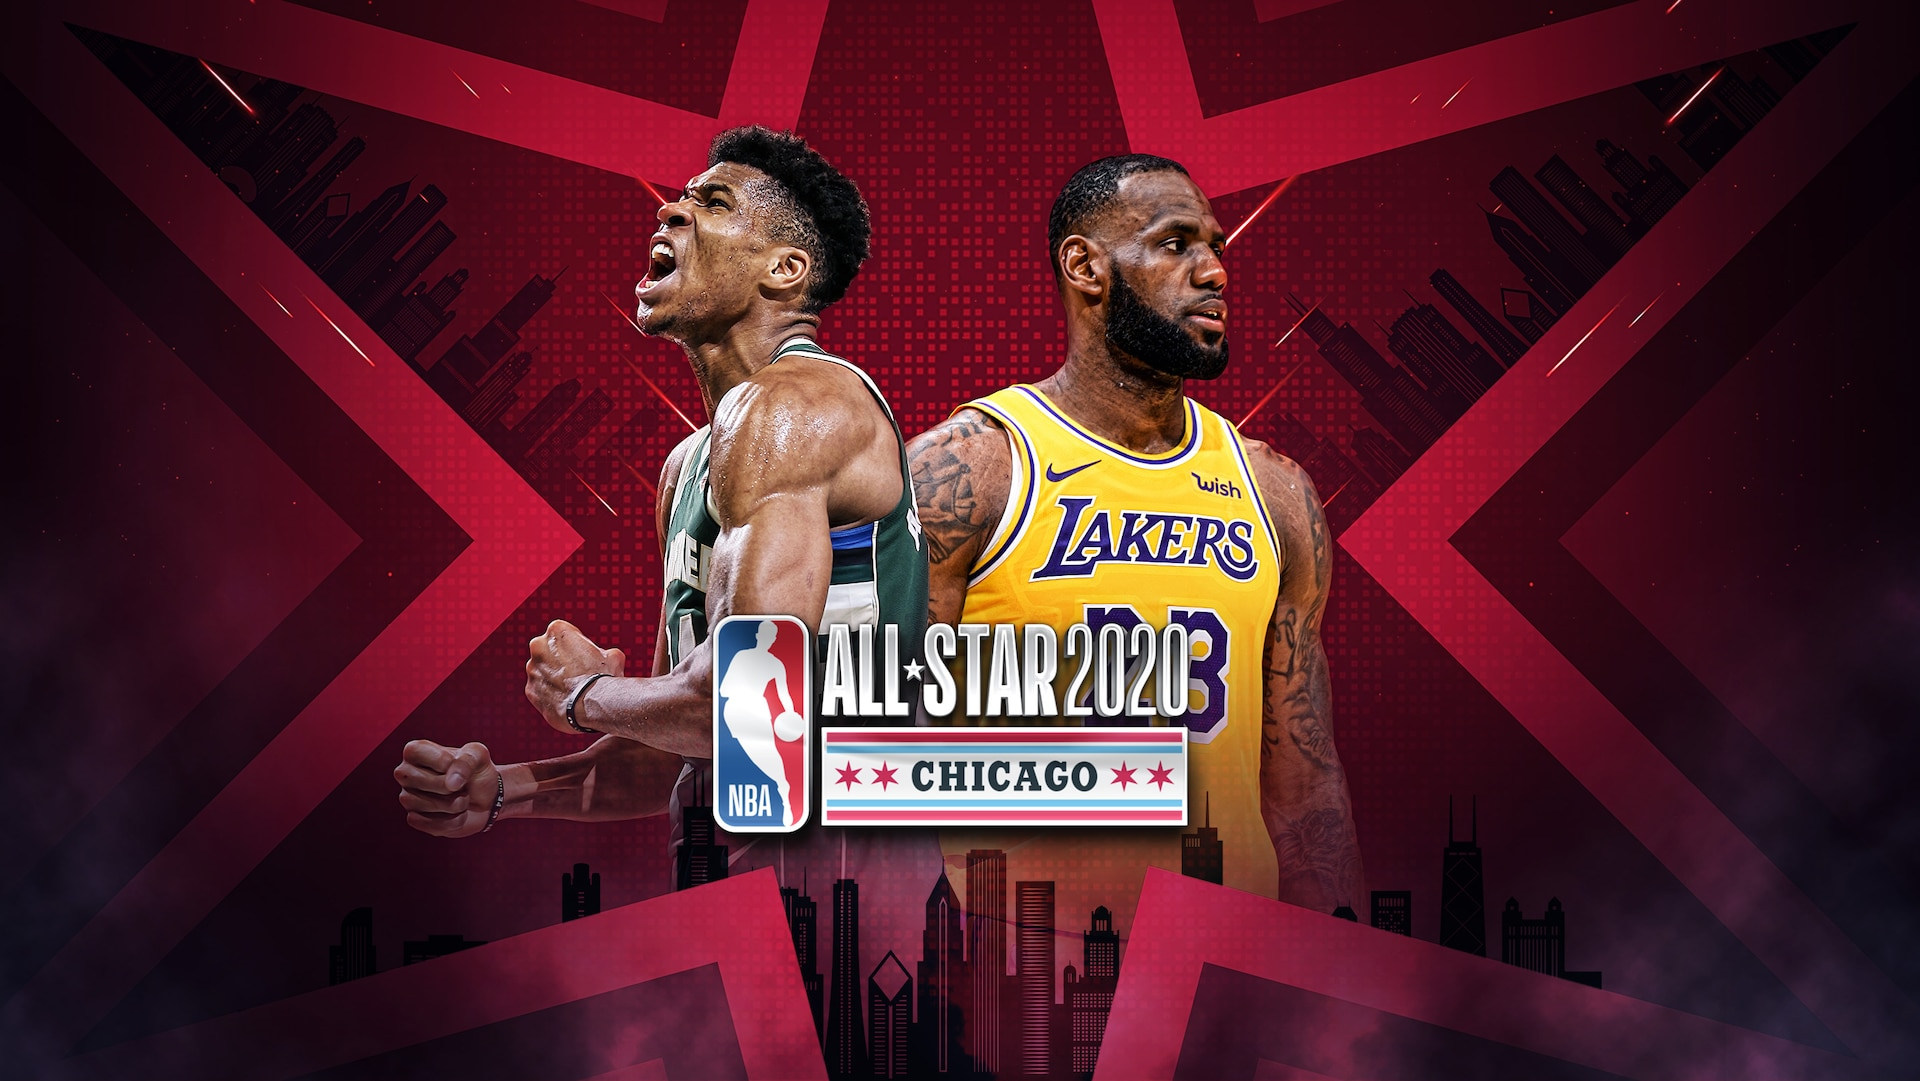 Lakers' LeBron James, Bucks' Giannis Antetokounmpo named starters and captains for 2020 NBA All-Star Game